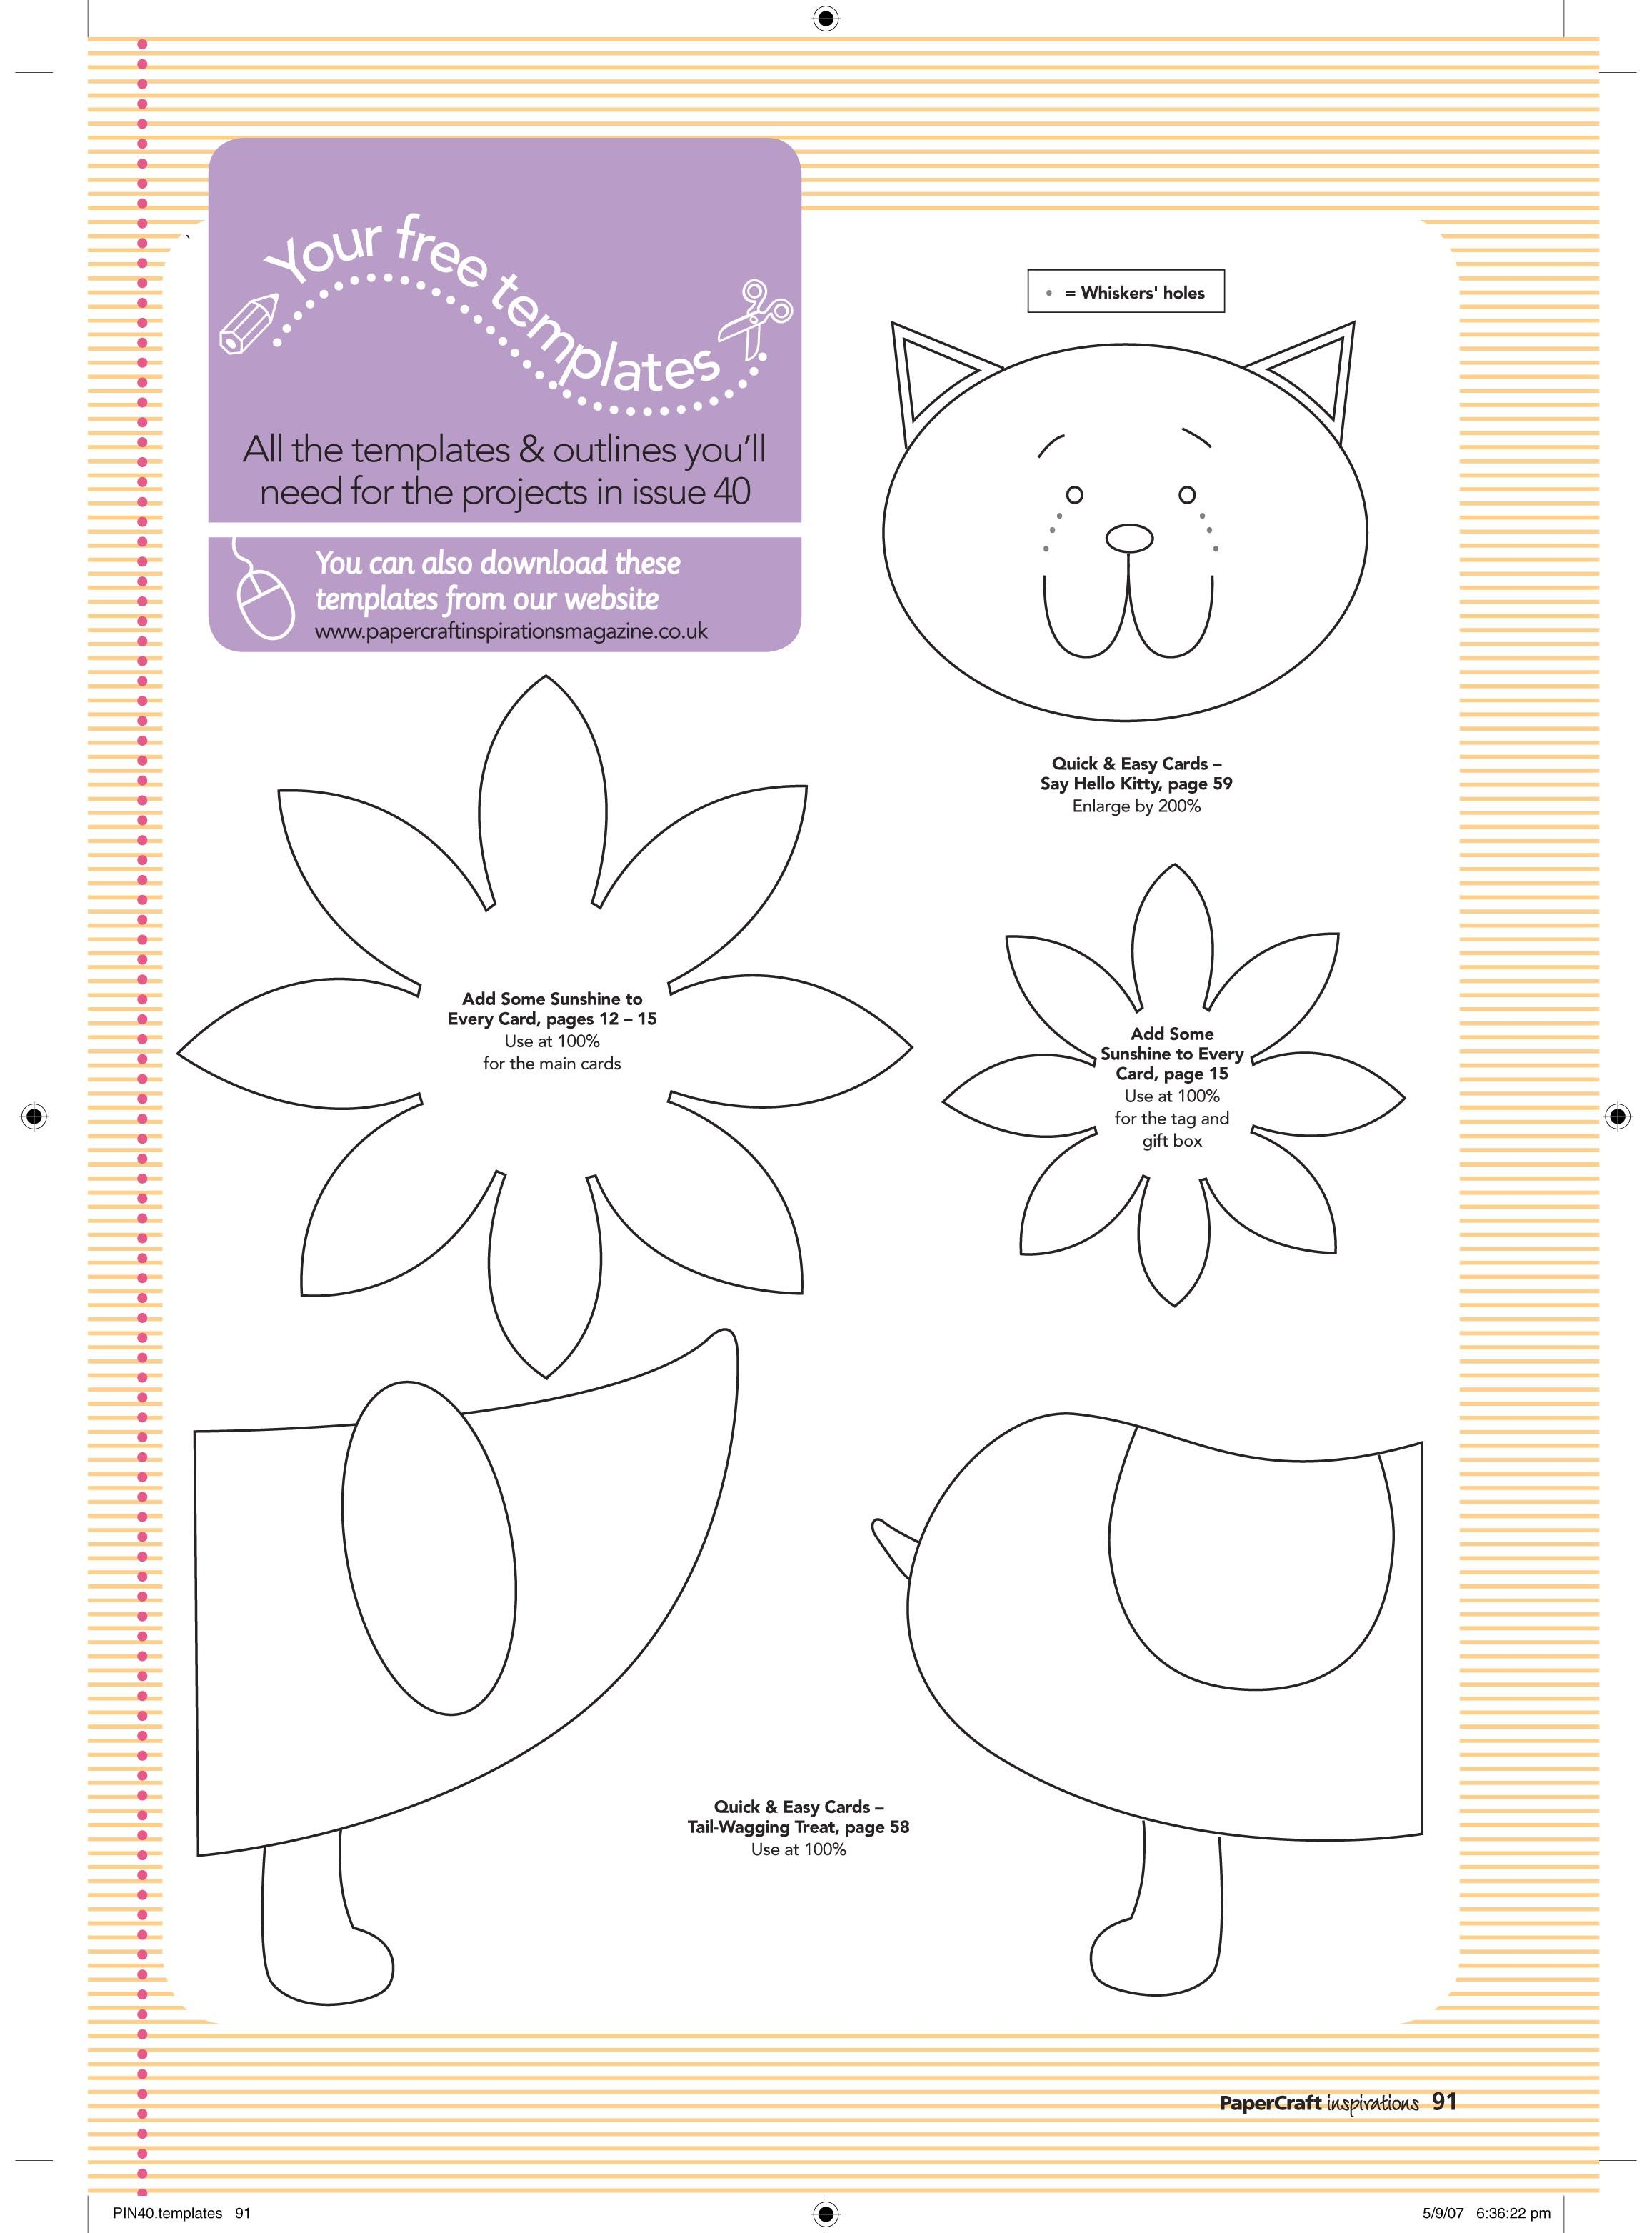 paper crafts templates | FREE November issue (40) templates ...